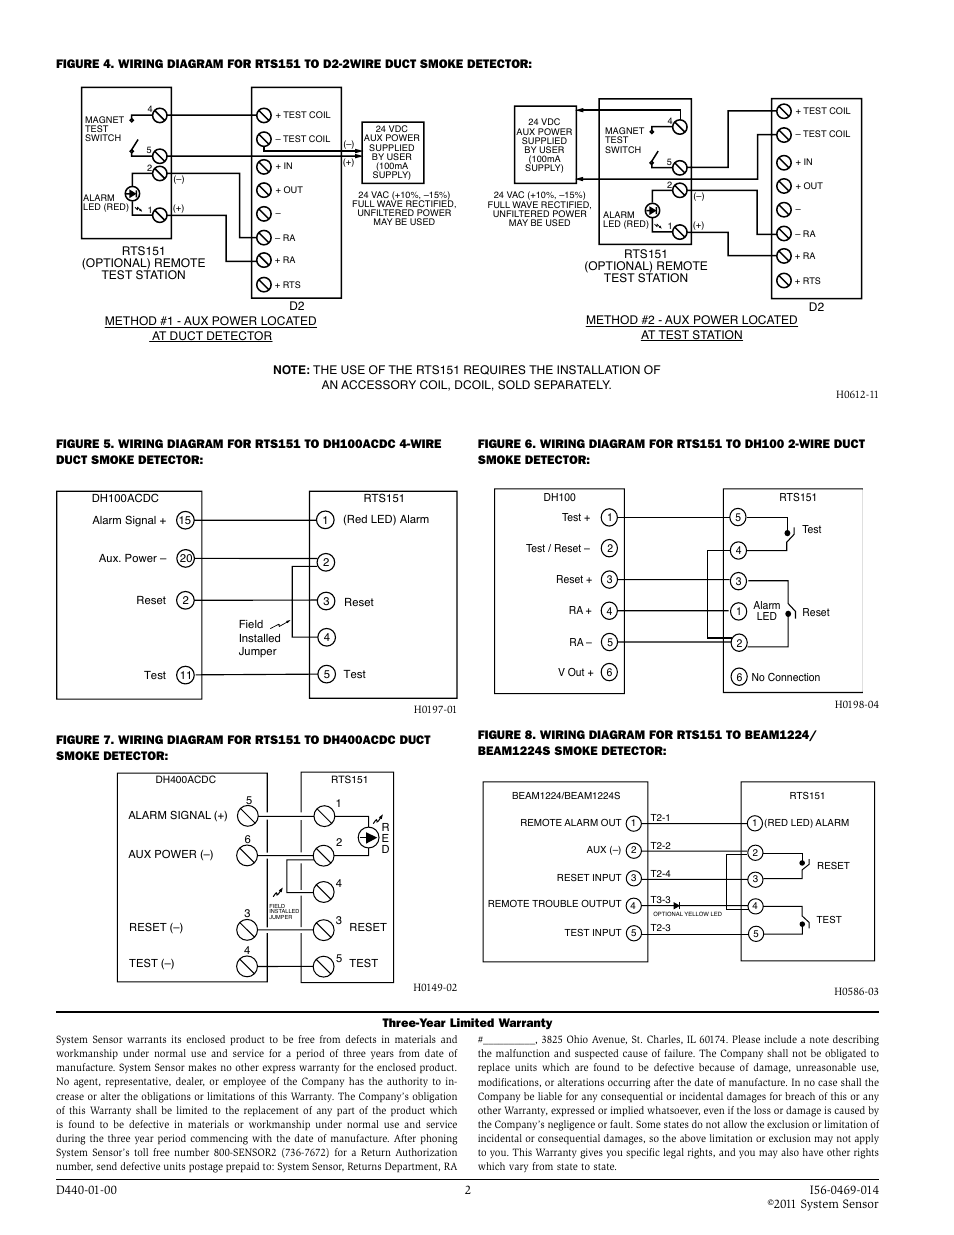 system sensor rts151 page2 system sensor rts151 user manual page 2 2 5R55E Transmission Wiring Diagram at bayanpartner.co